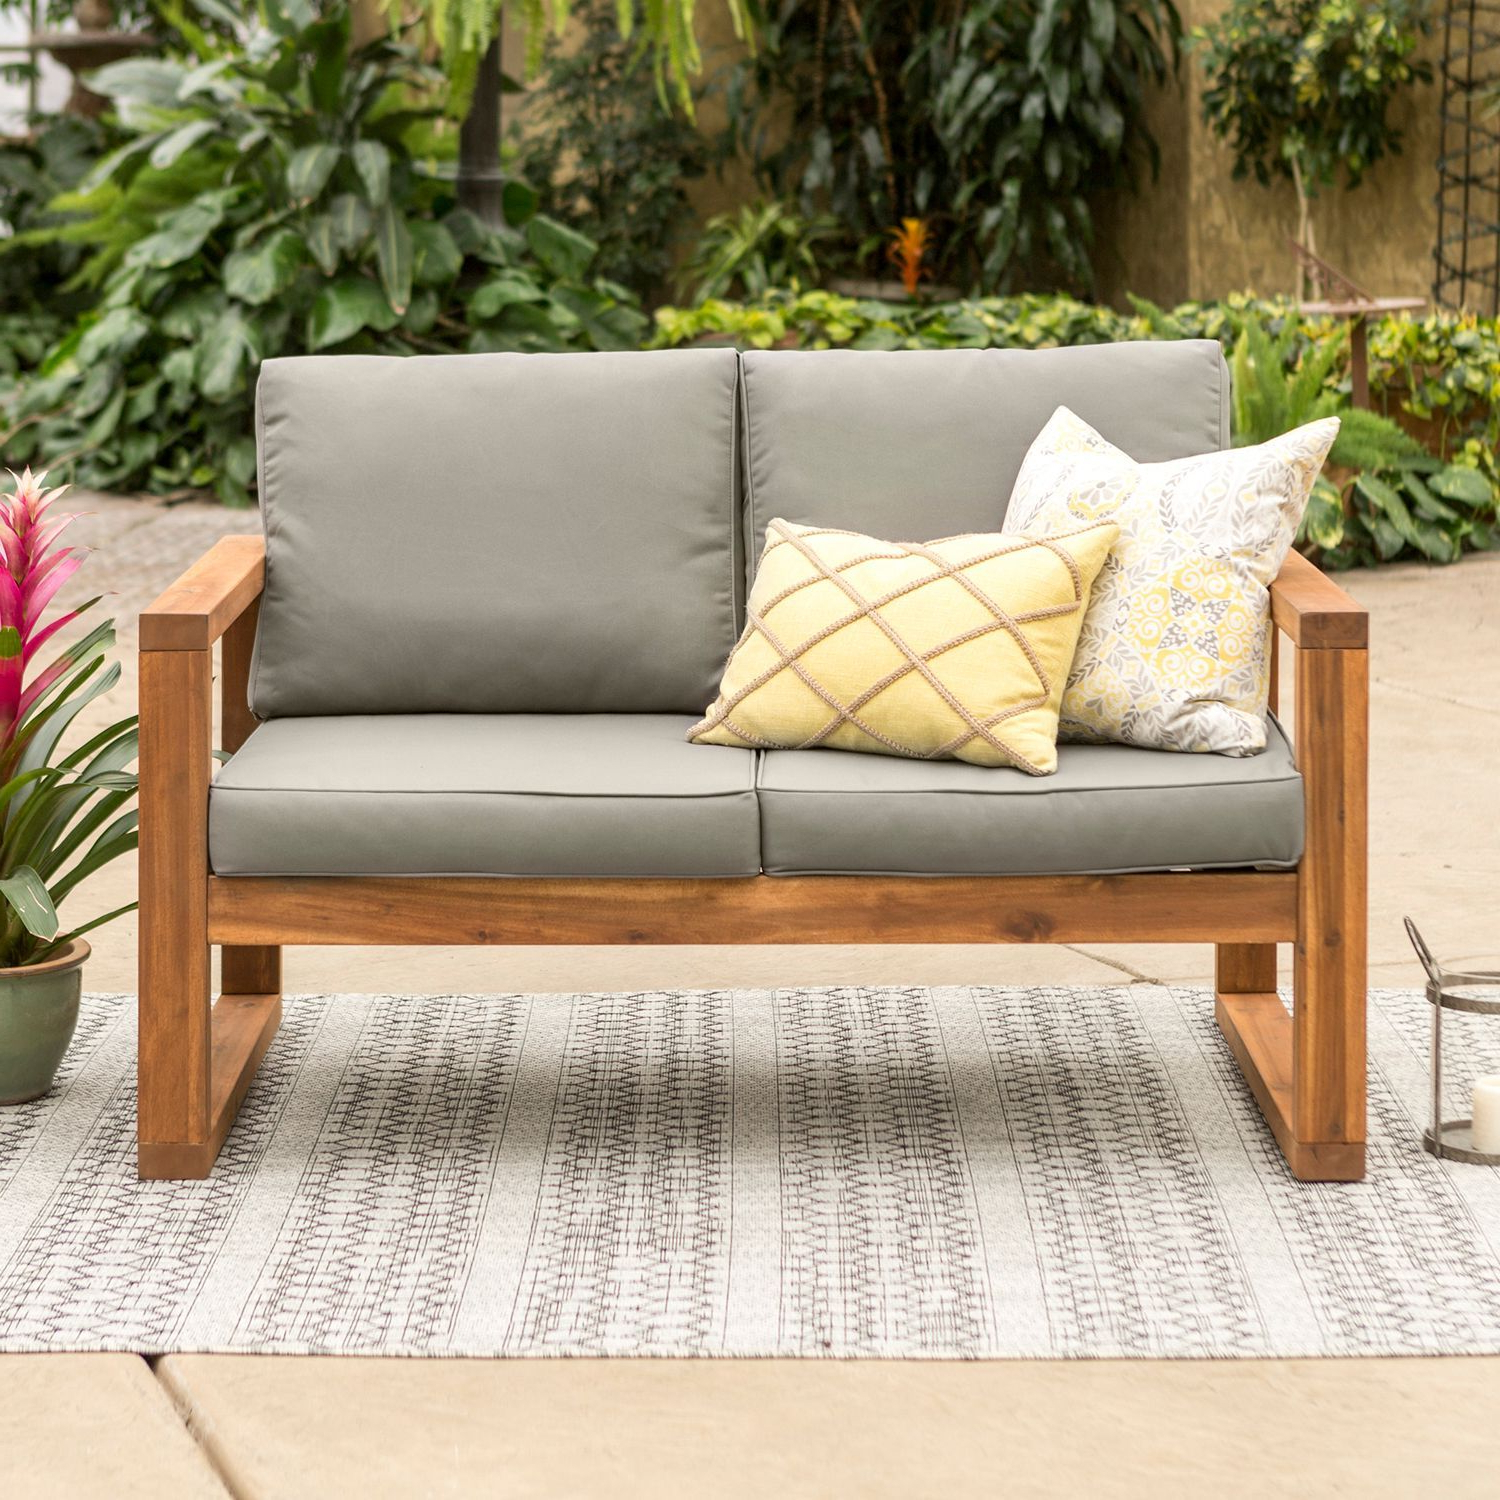 2019 Hudson Acacia Outdoor Patio Love Seat With Gray Cushions Regarding Lyall Loveseats With Cushion (View 1 of 20)